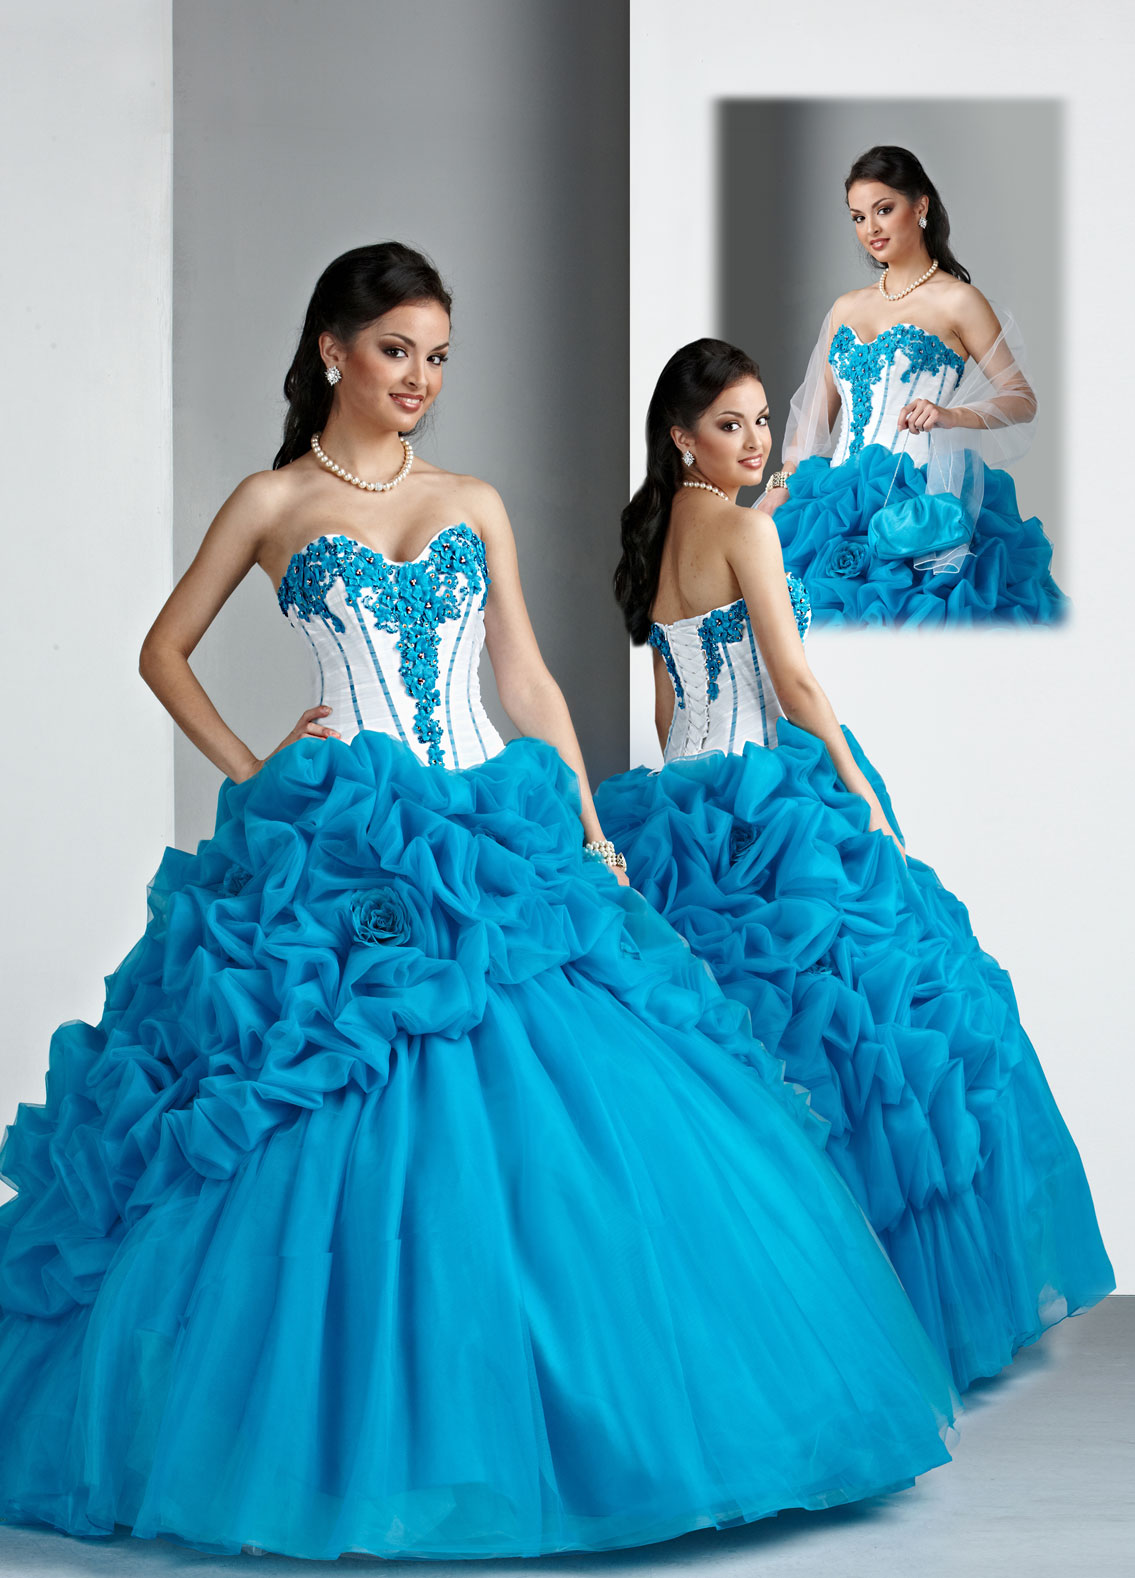 c77917679ea Turquoise and White Strapless Sweetheart Lace up Floor Length Ball Gown  Quinceanera Dresses With Appliques and Ruffles